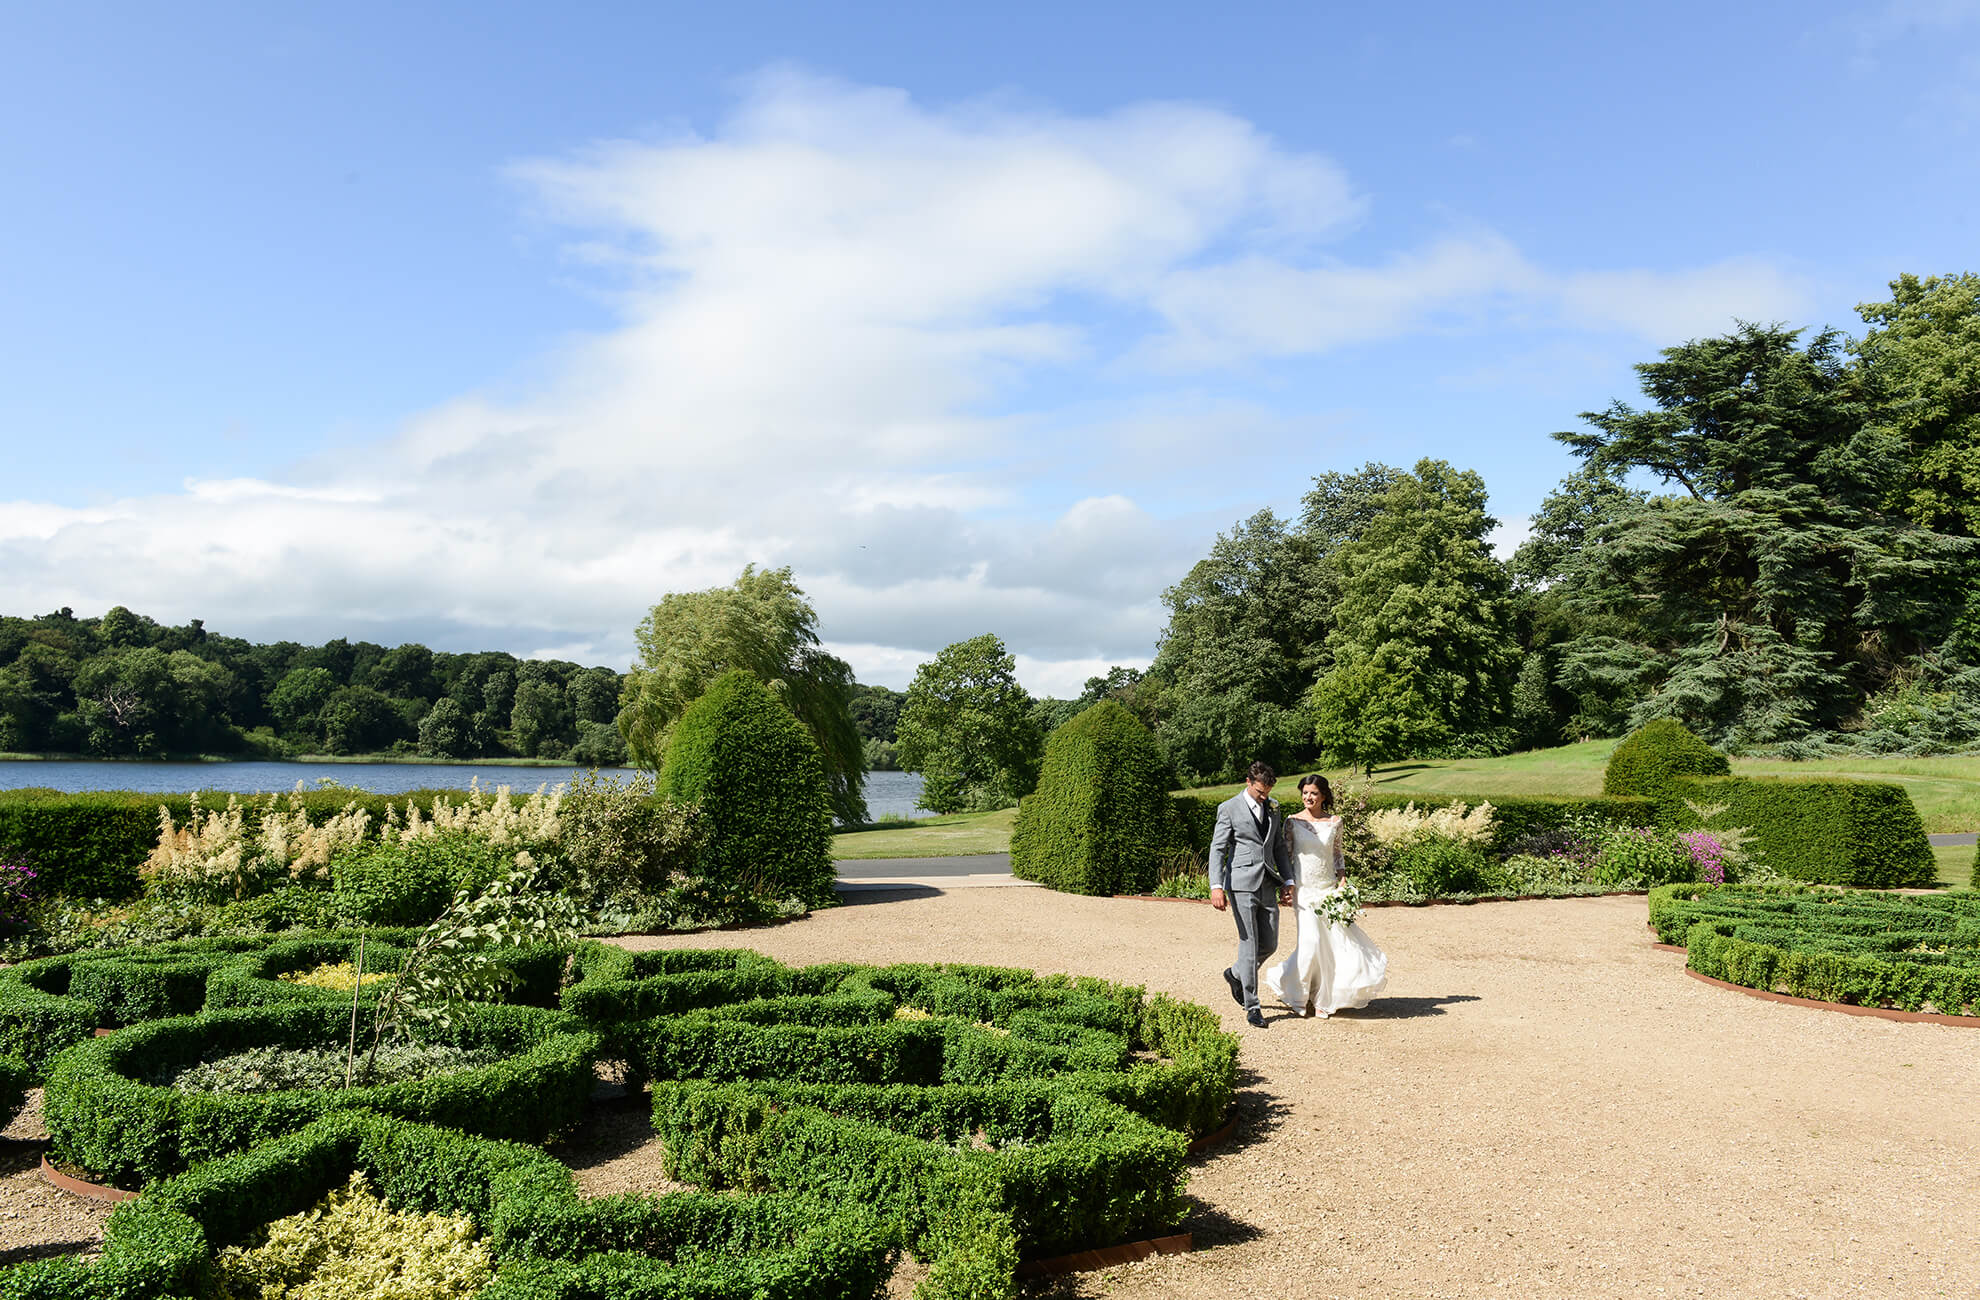 The bride and groom take a walk by the lake at this country wedding venue in Cheshire